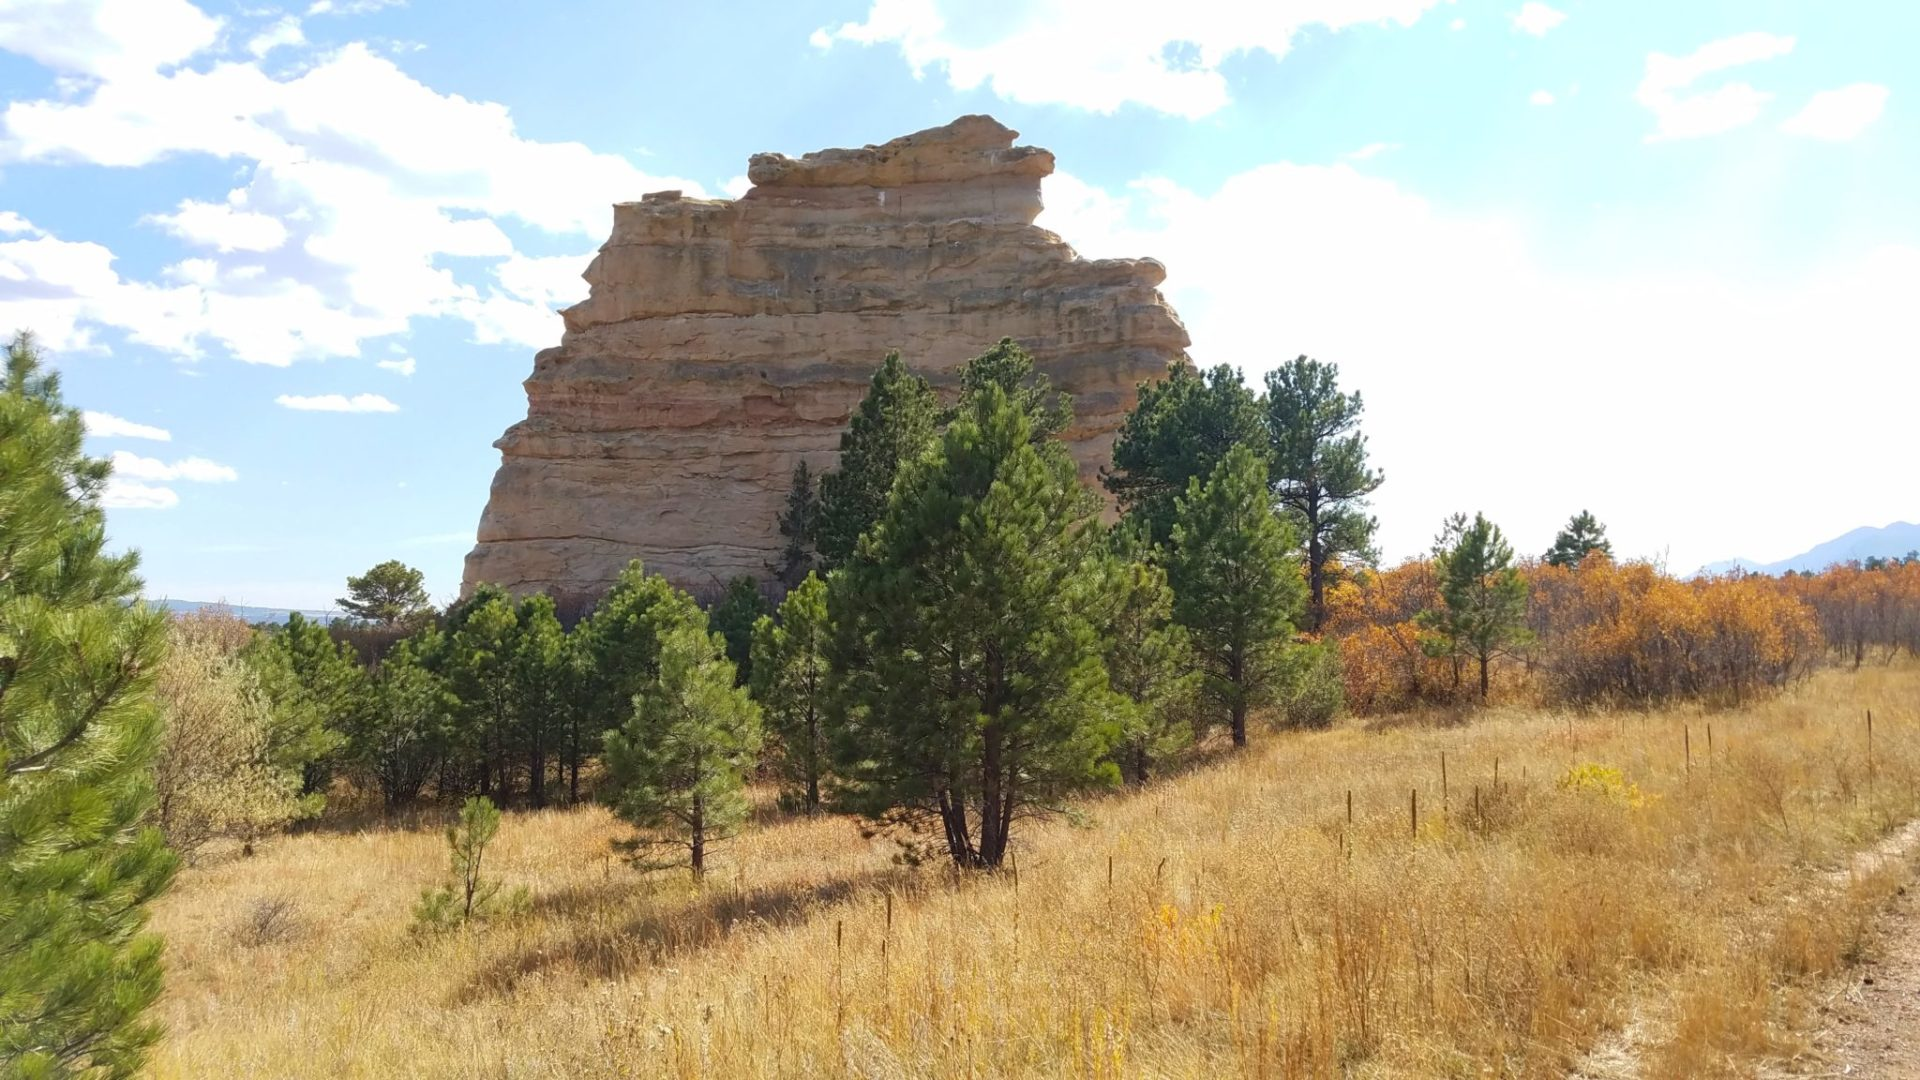 Approaching Monument Rock